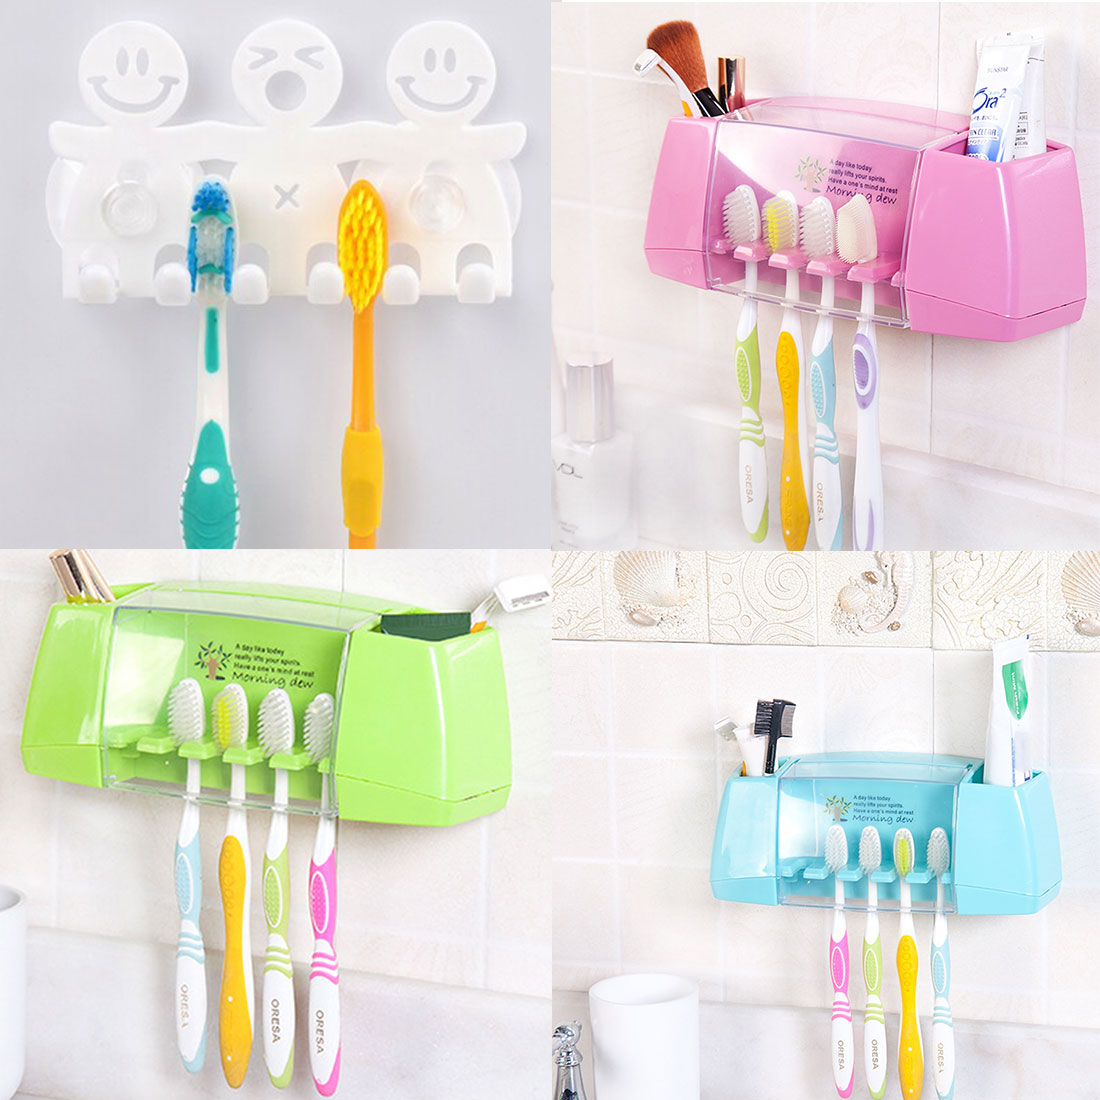 Bulk Bathroom Supplies: Wholesale Cartoon Toothbrush Holder Suction Hooks Cups